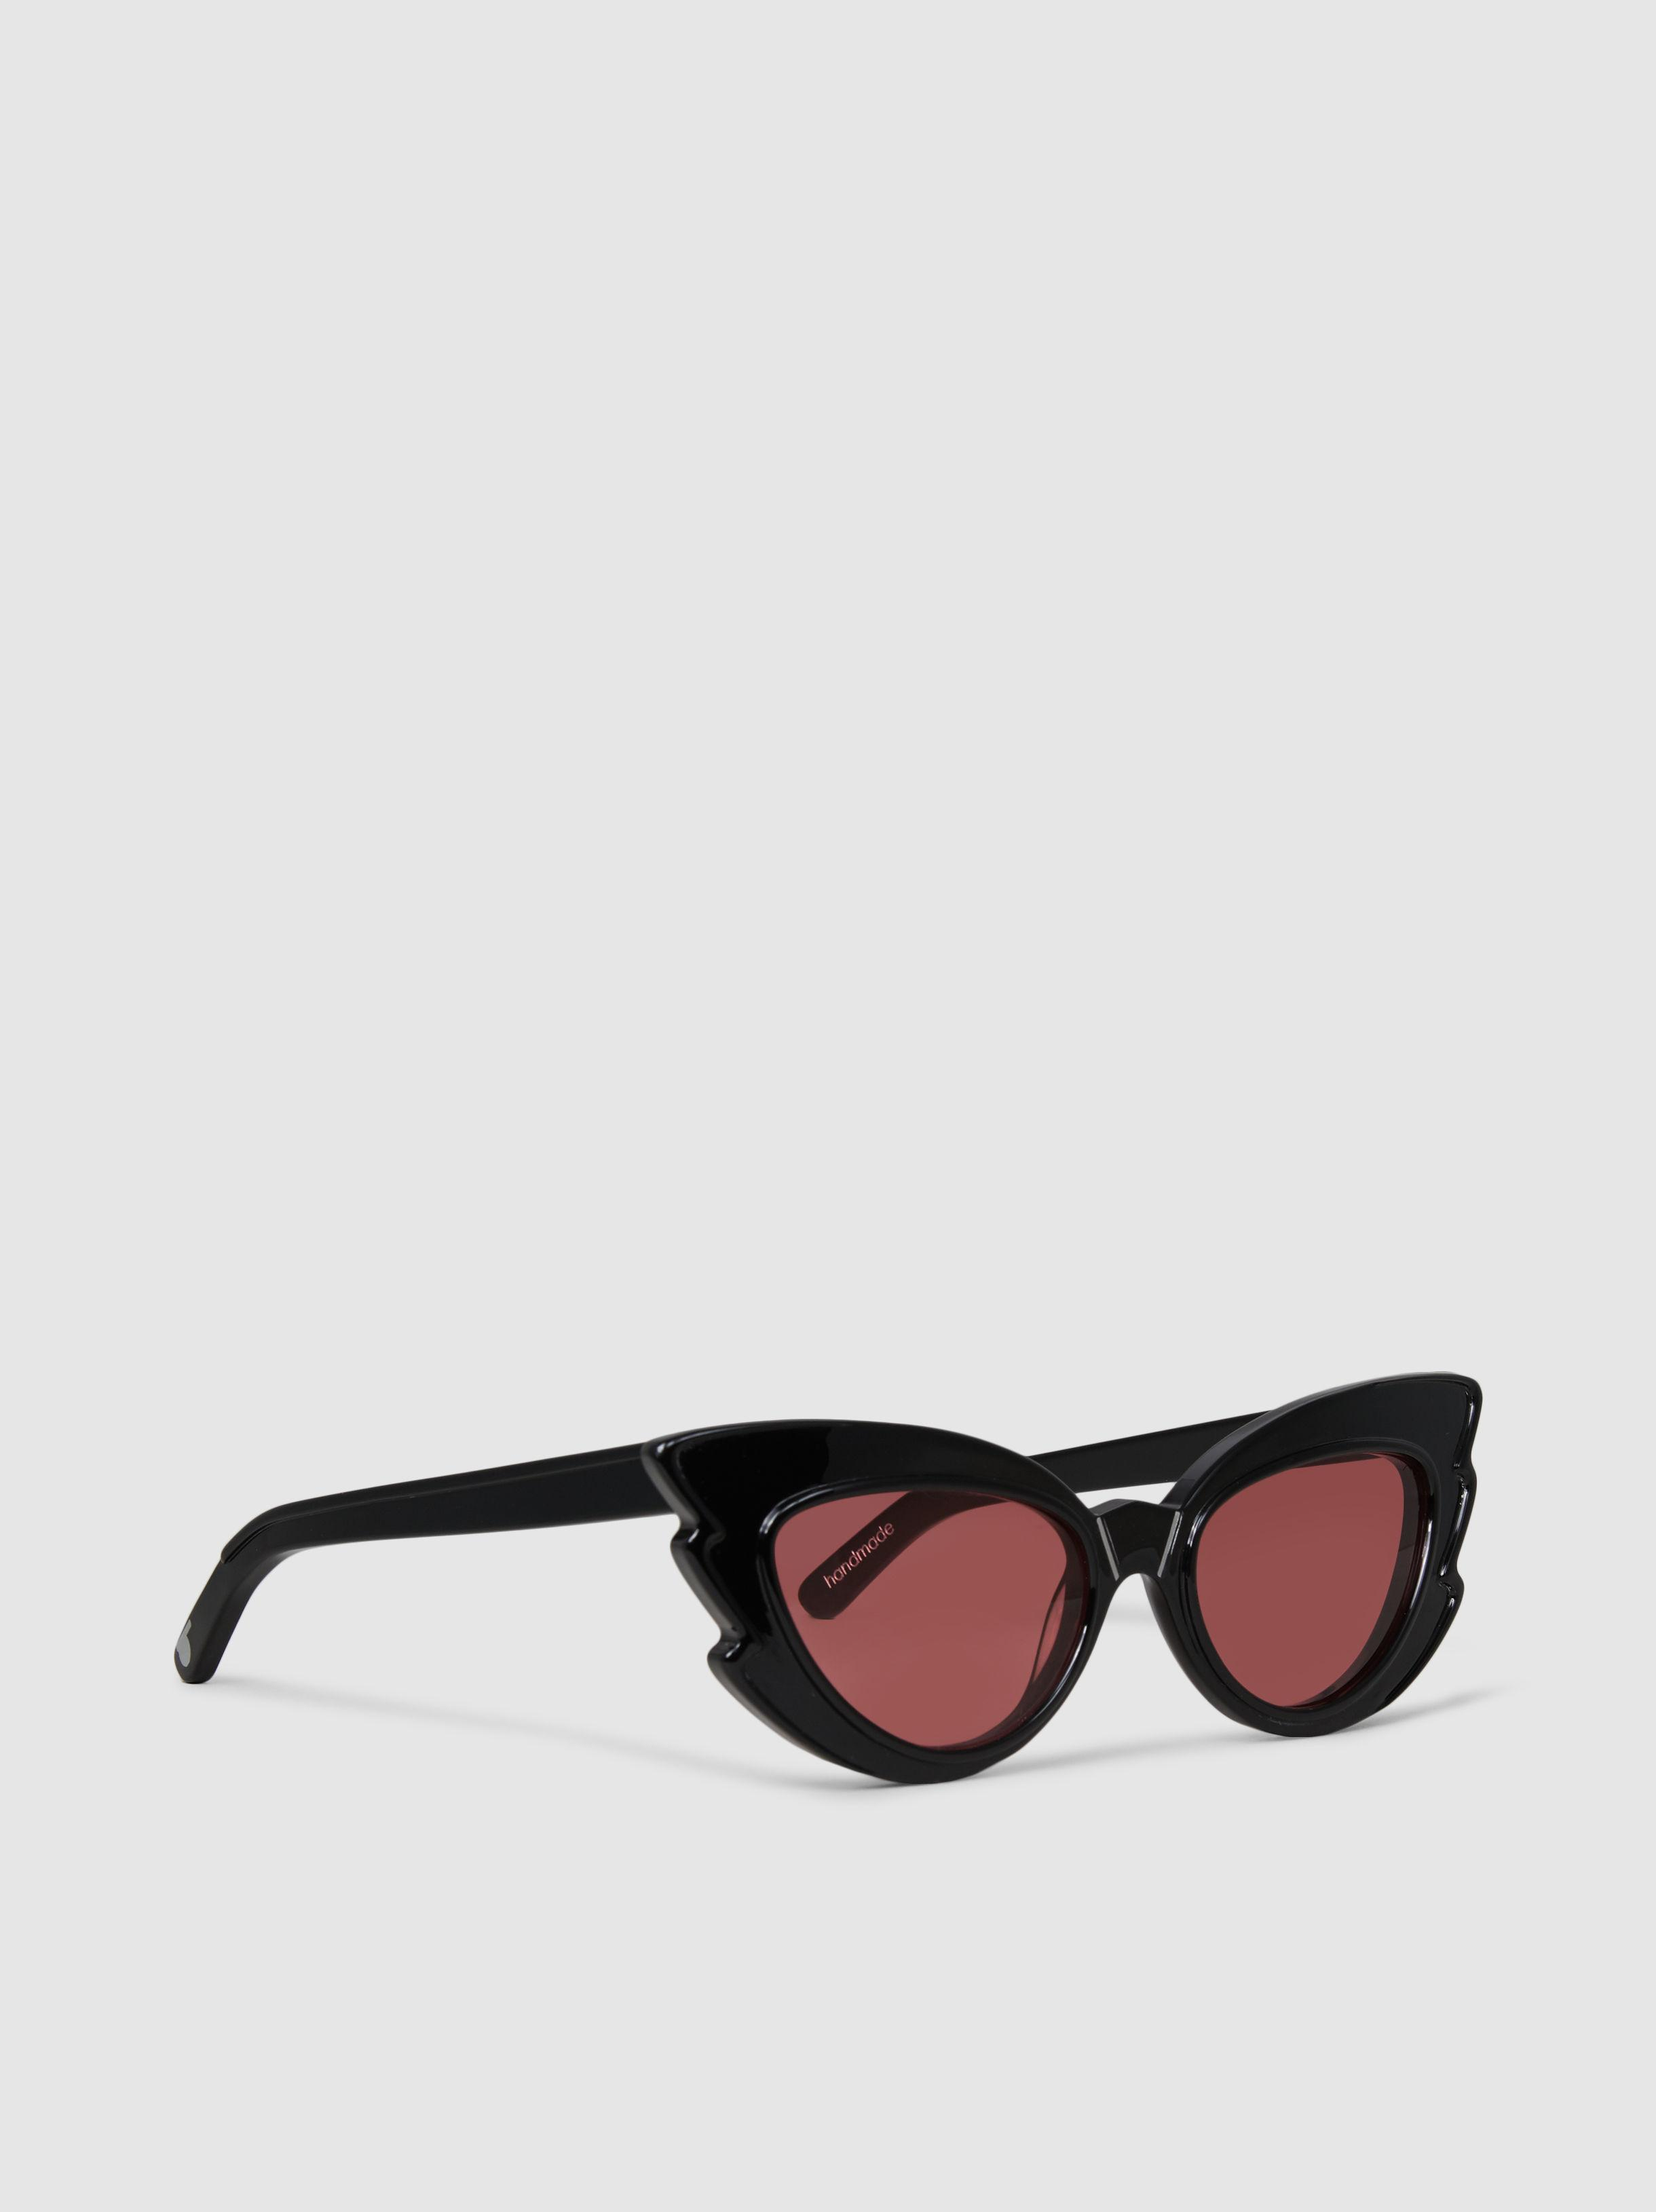 75a9fa8410 Pared Eyewear - Black Stargazers Cat-eye Acetate Sunglasses - Lyst. View  fullscreen